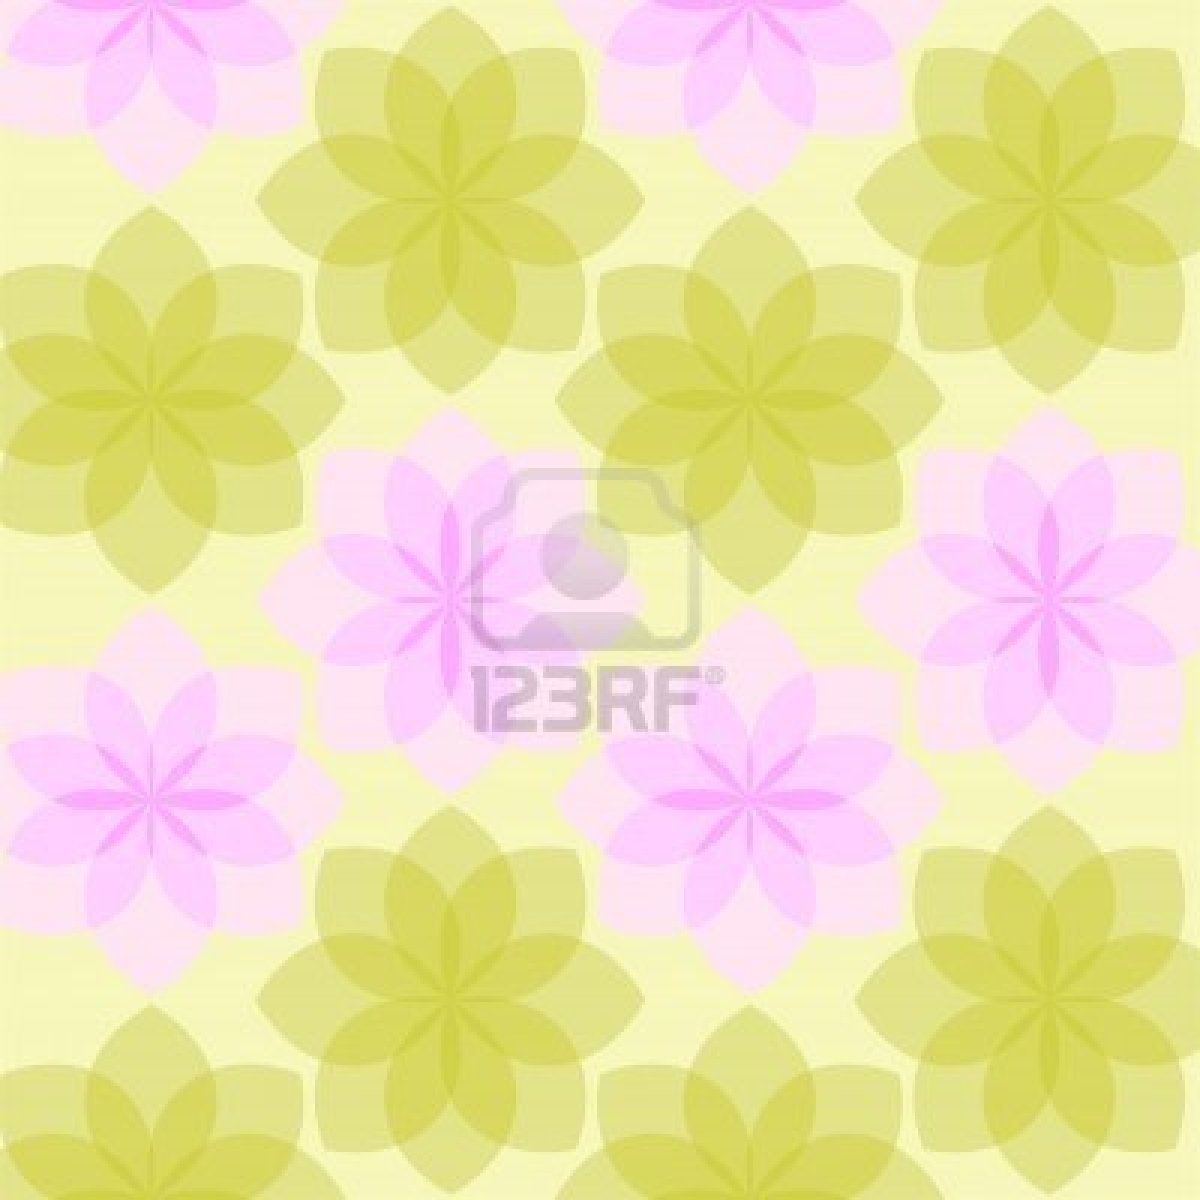 http://3.bp.blogspot.com/-y4tM-XBs5WQ/UPKdidW3DvI/AAAAAAAAAHc/m31wYFJKMoA/s1600/5156019-yellow-wallpaper-from-the-stylized-flowers.jpg